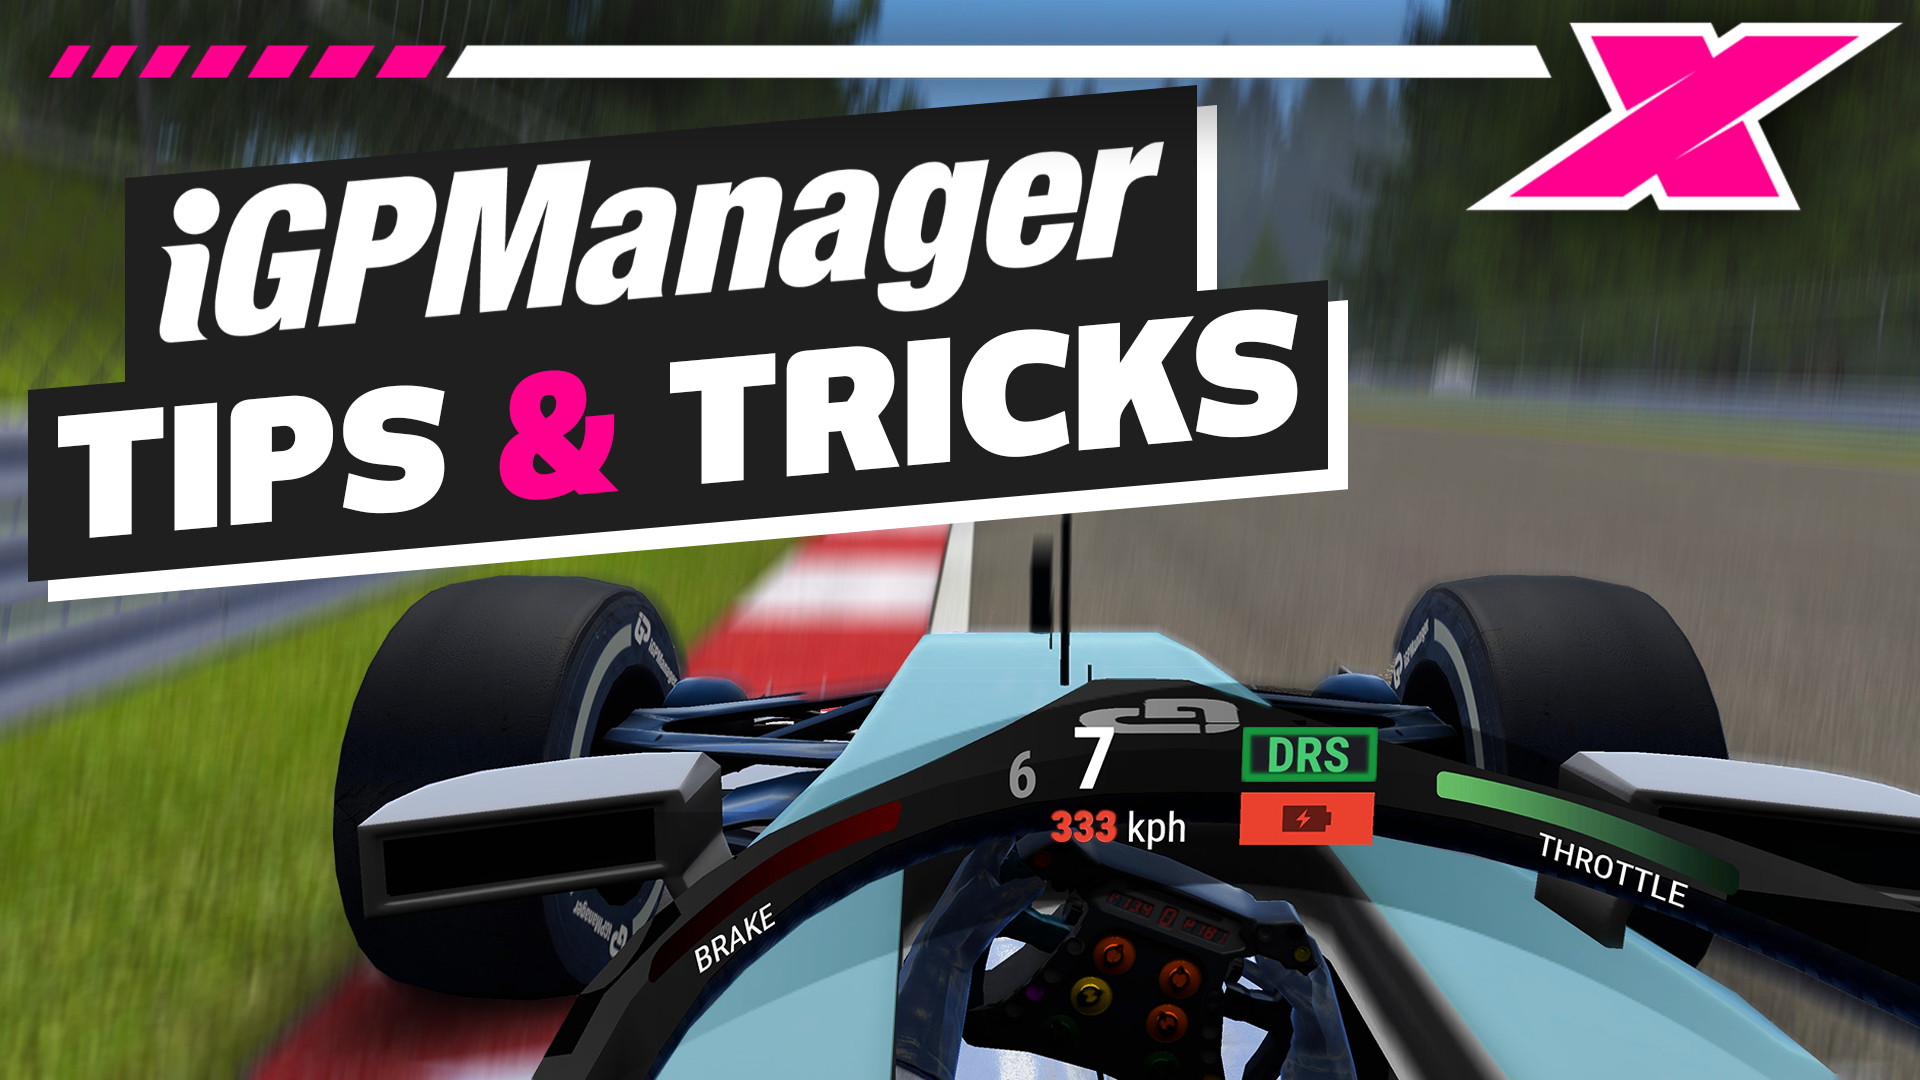 A beginner's guide to iGP Manager